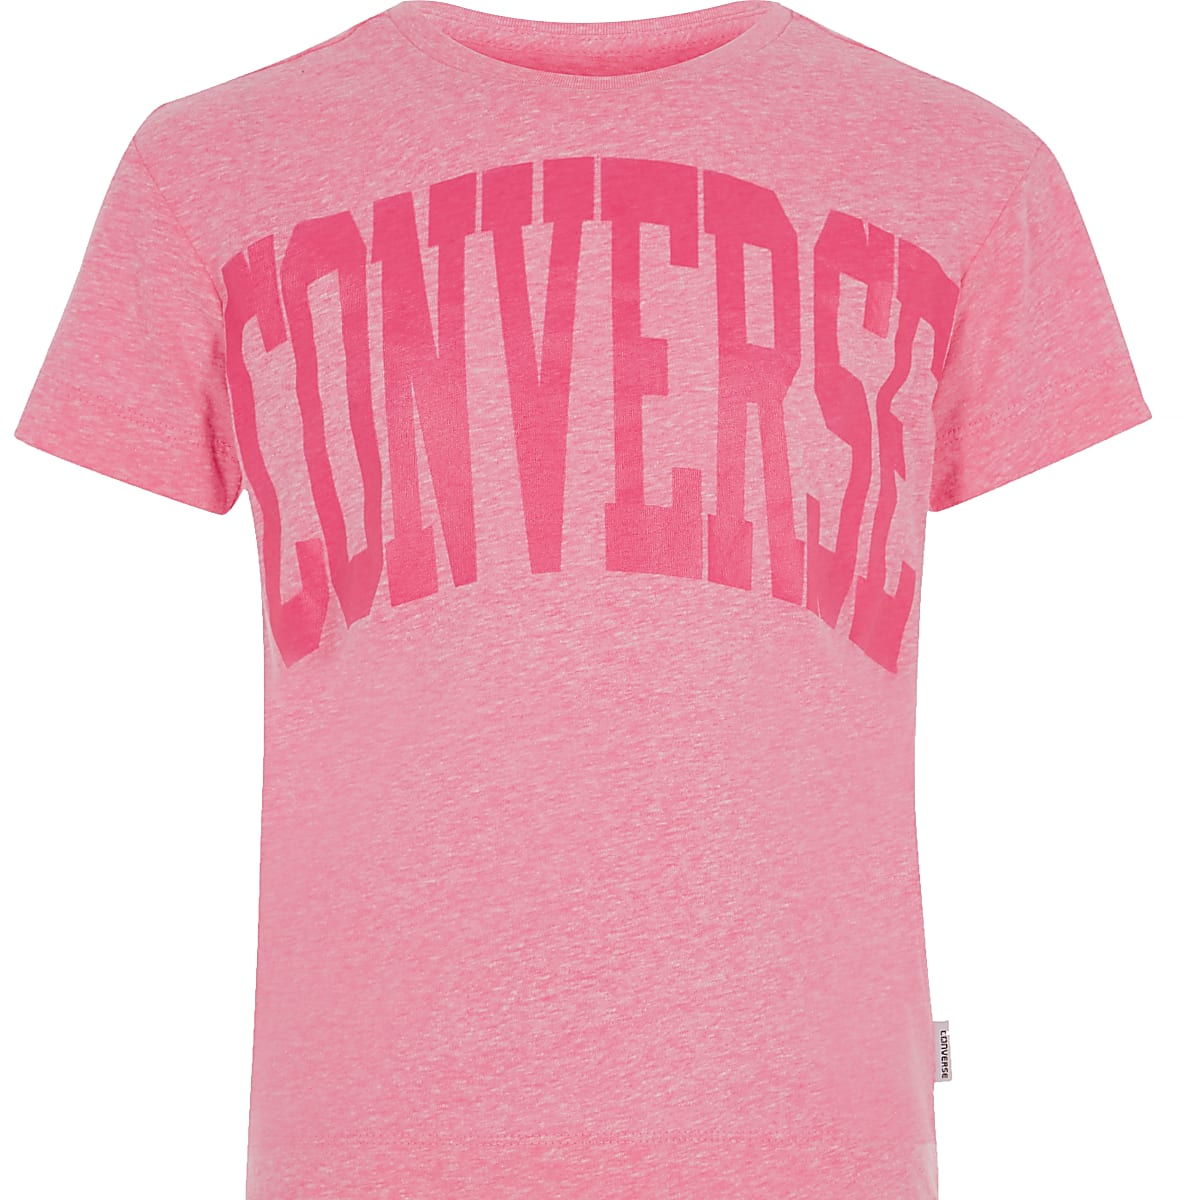 Girls Converse pink print T-shirt